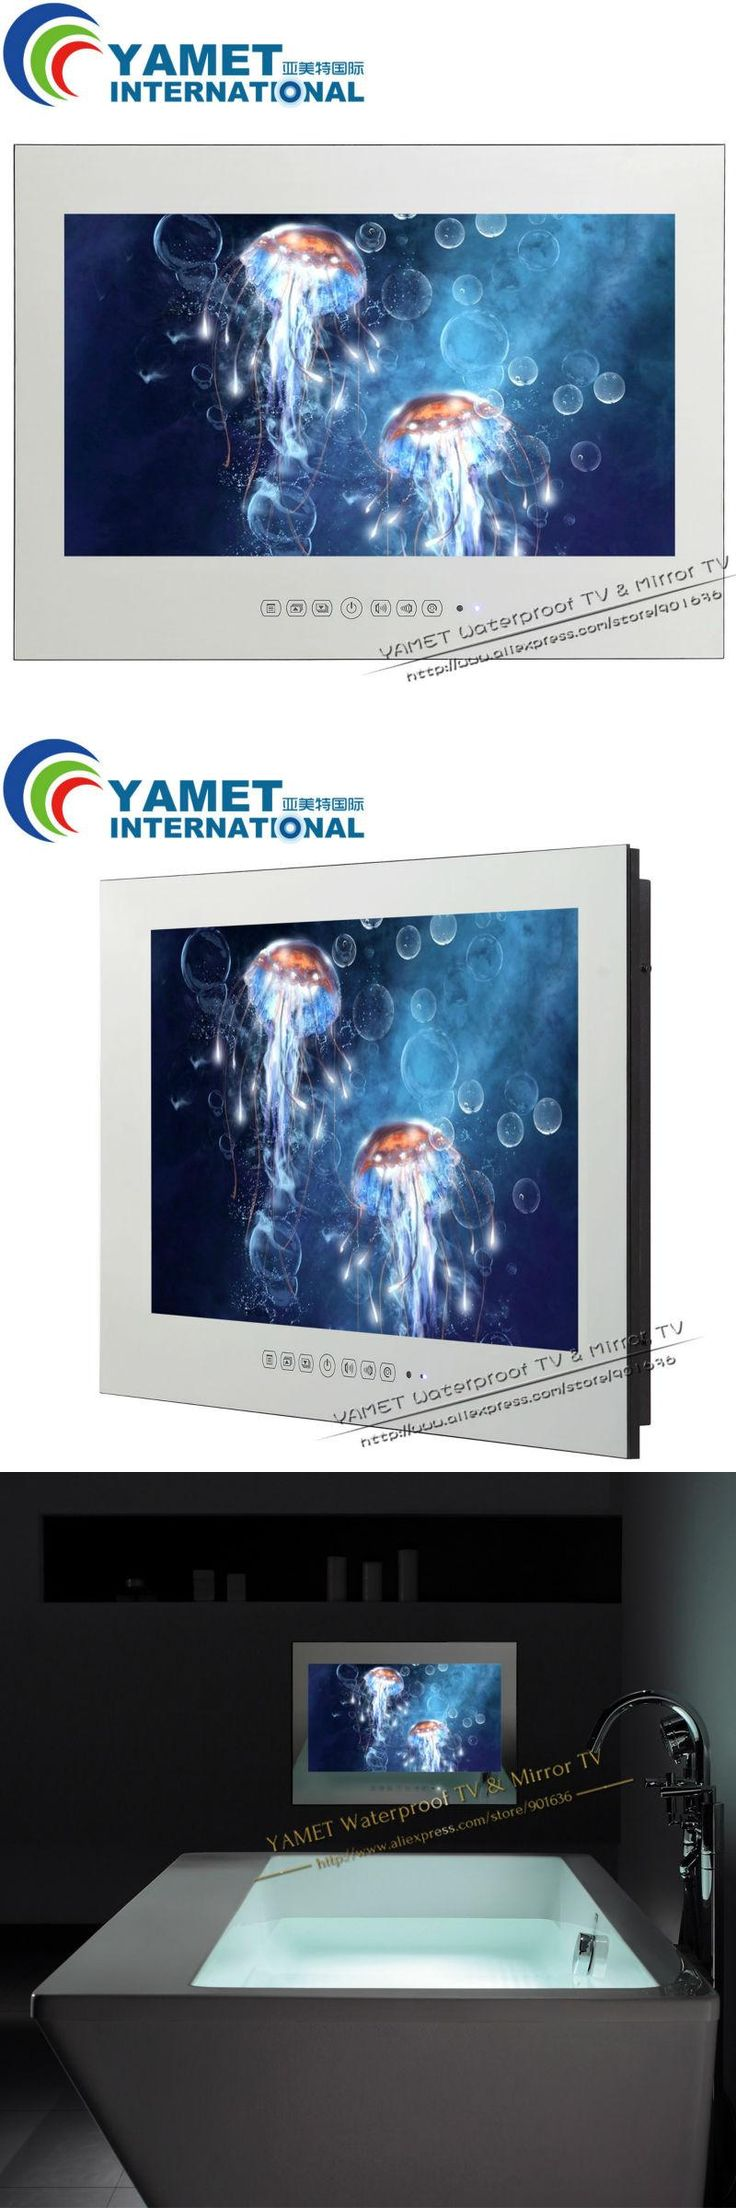 32 inch Yamet Mirror Android smart TV Mirror Television Hotel TV WIFI full-HD 1080P HDMI